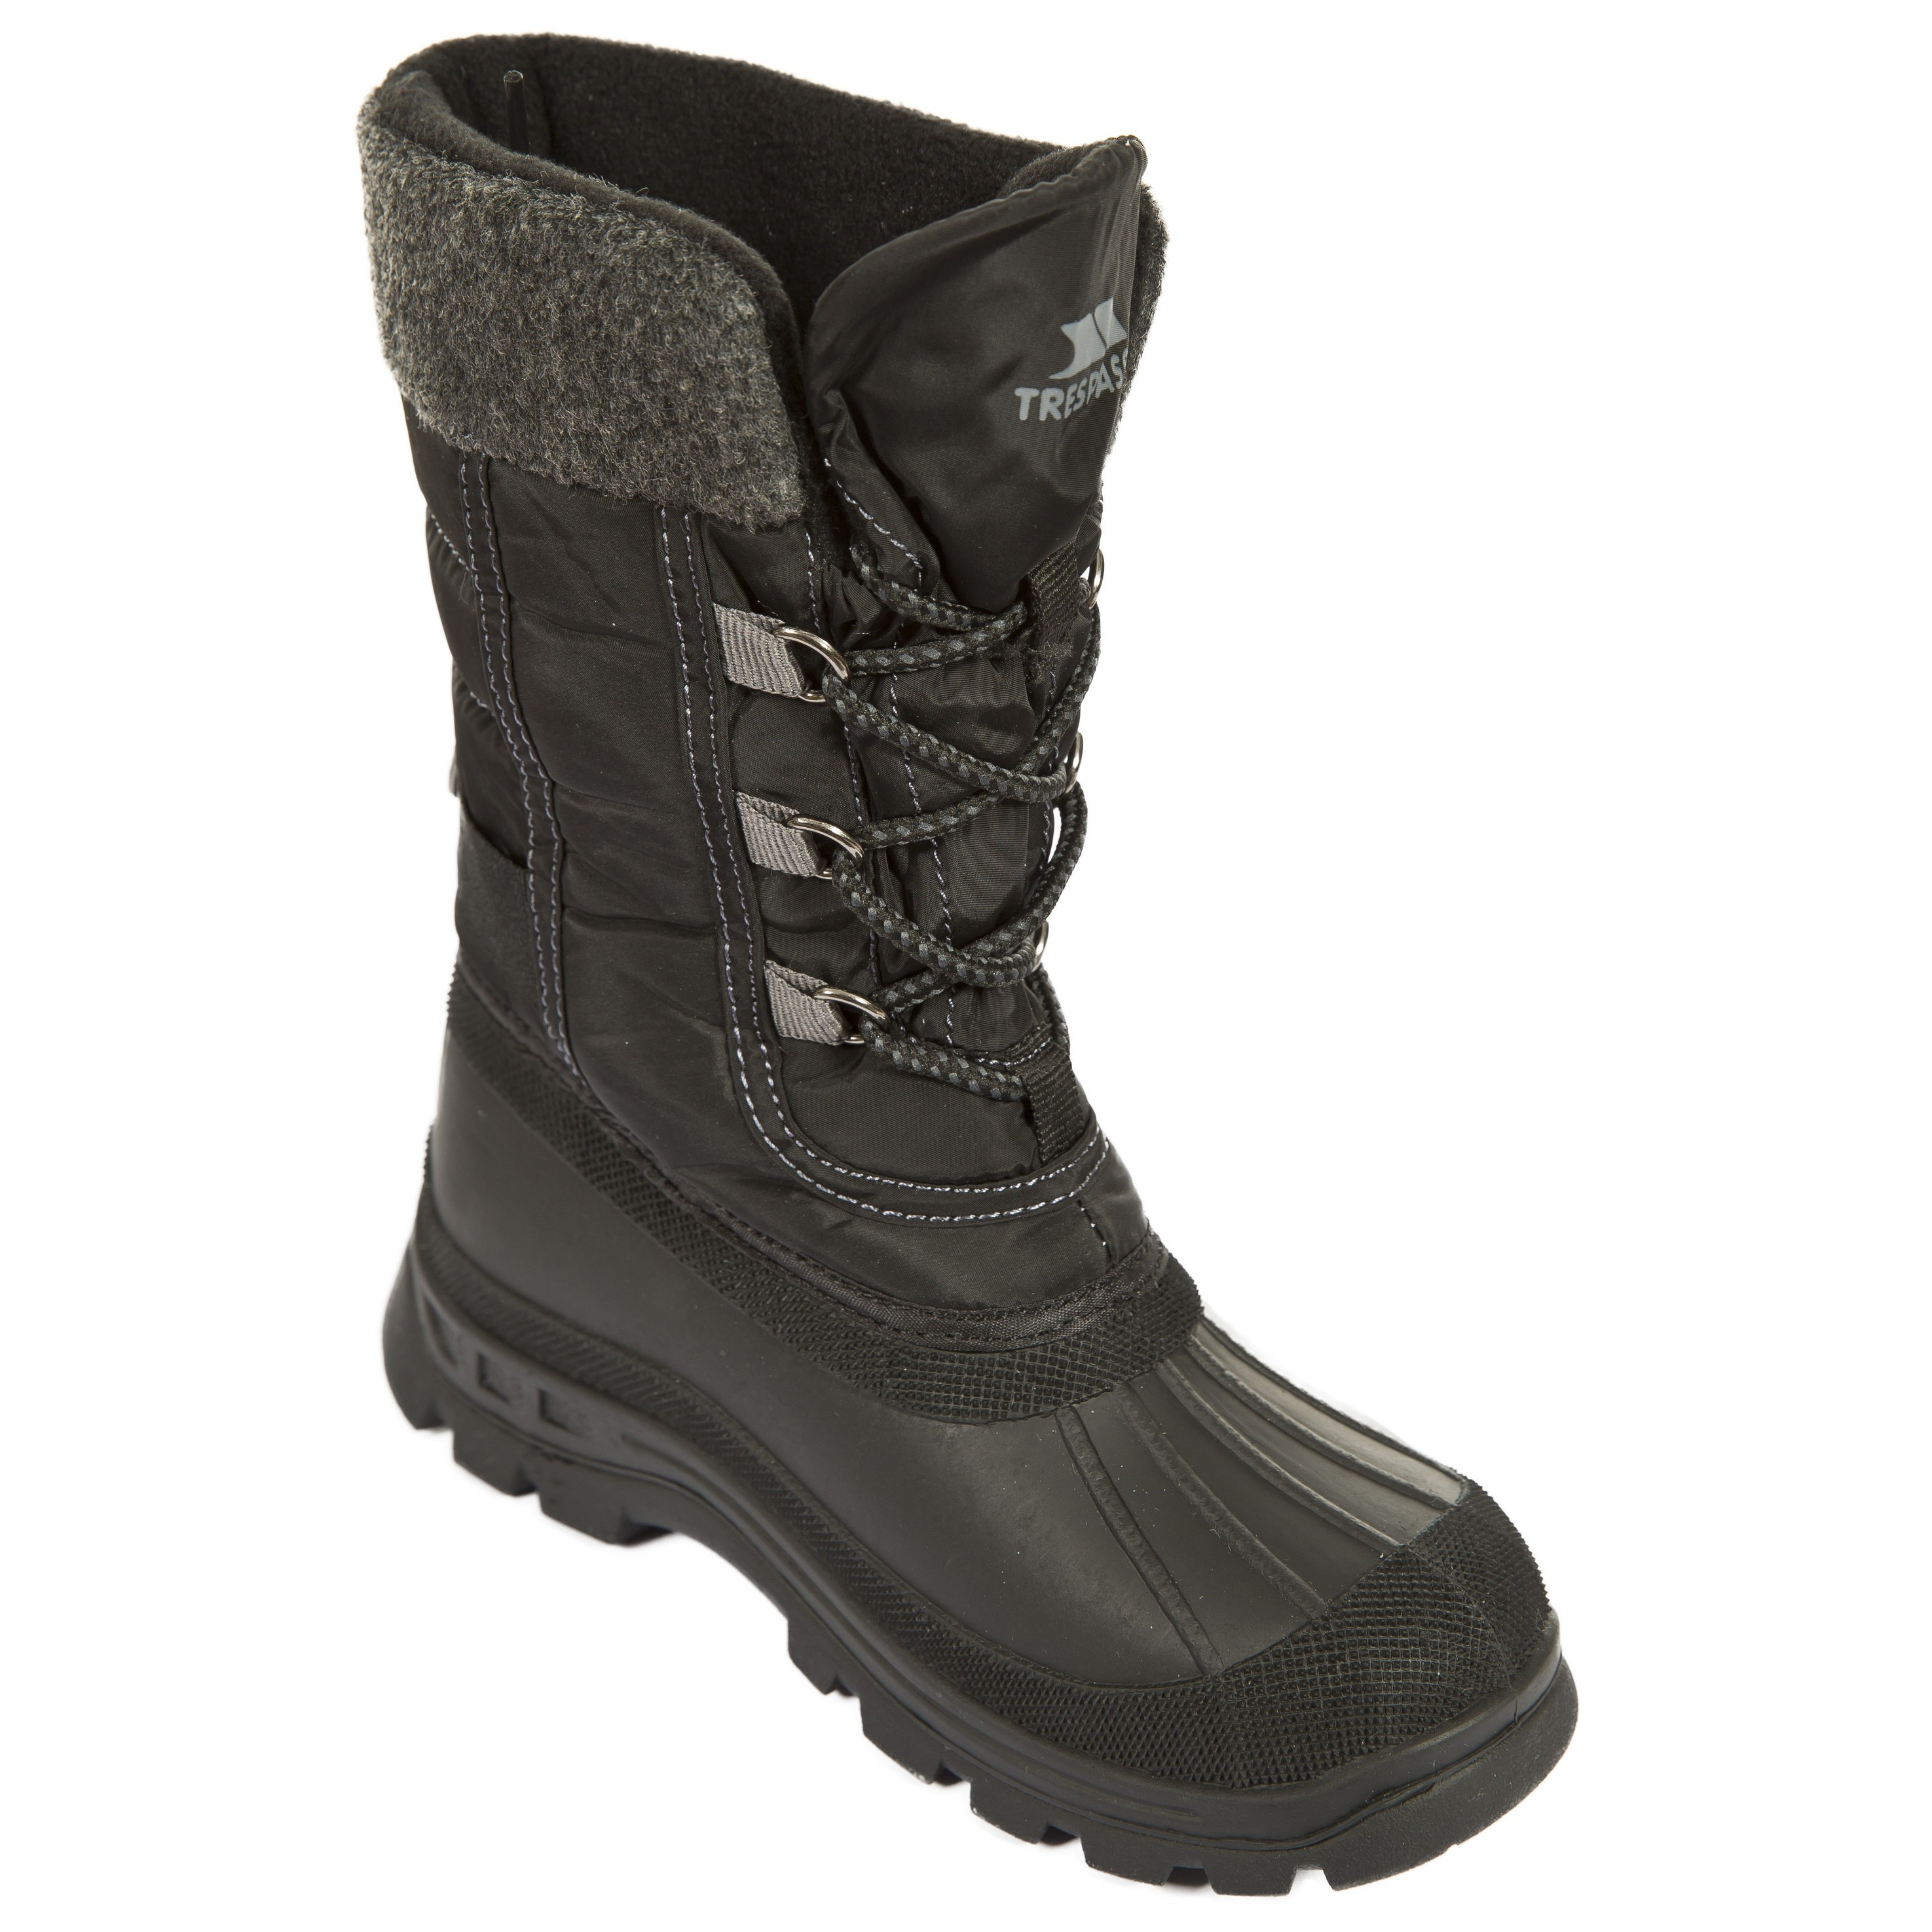 Trespass Youths Boys Strachan Snow Boots (4 Youth UK) (Black)